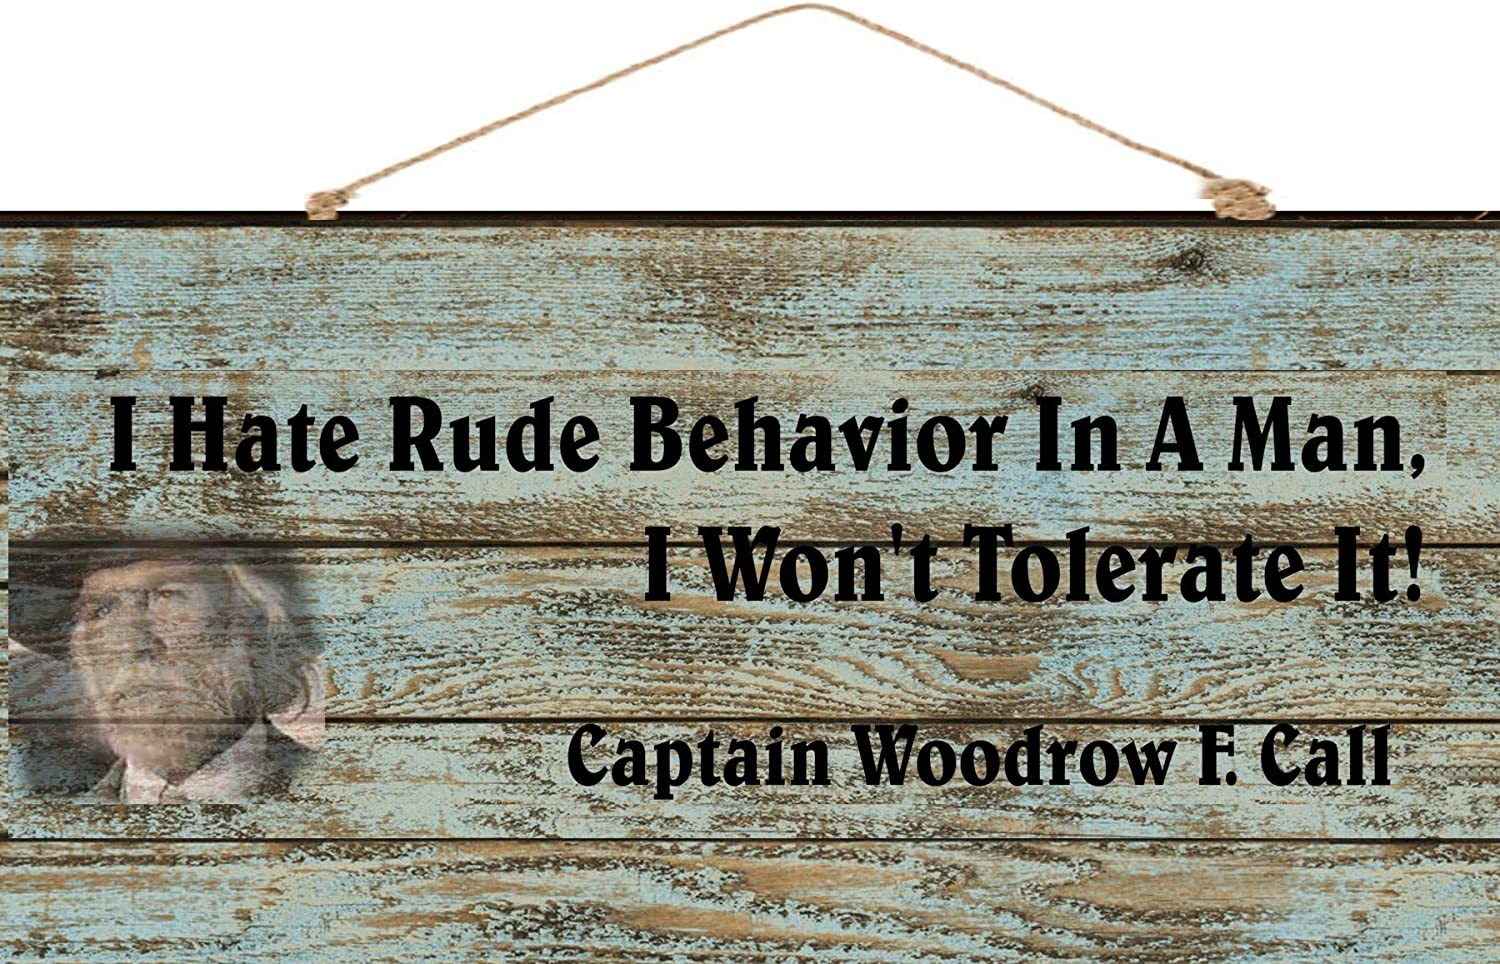 "Old West Signs, Slogans & Quotes 6"" x 12"" Inch Wood Wooden Sign I Hate Rude Behavior in A Man I Won' Tolerate It Captain Call Lonesome Dove"